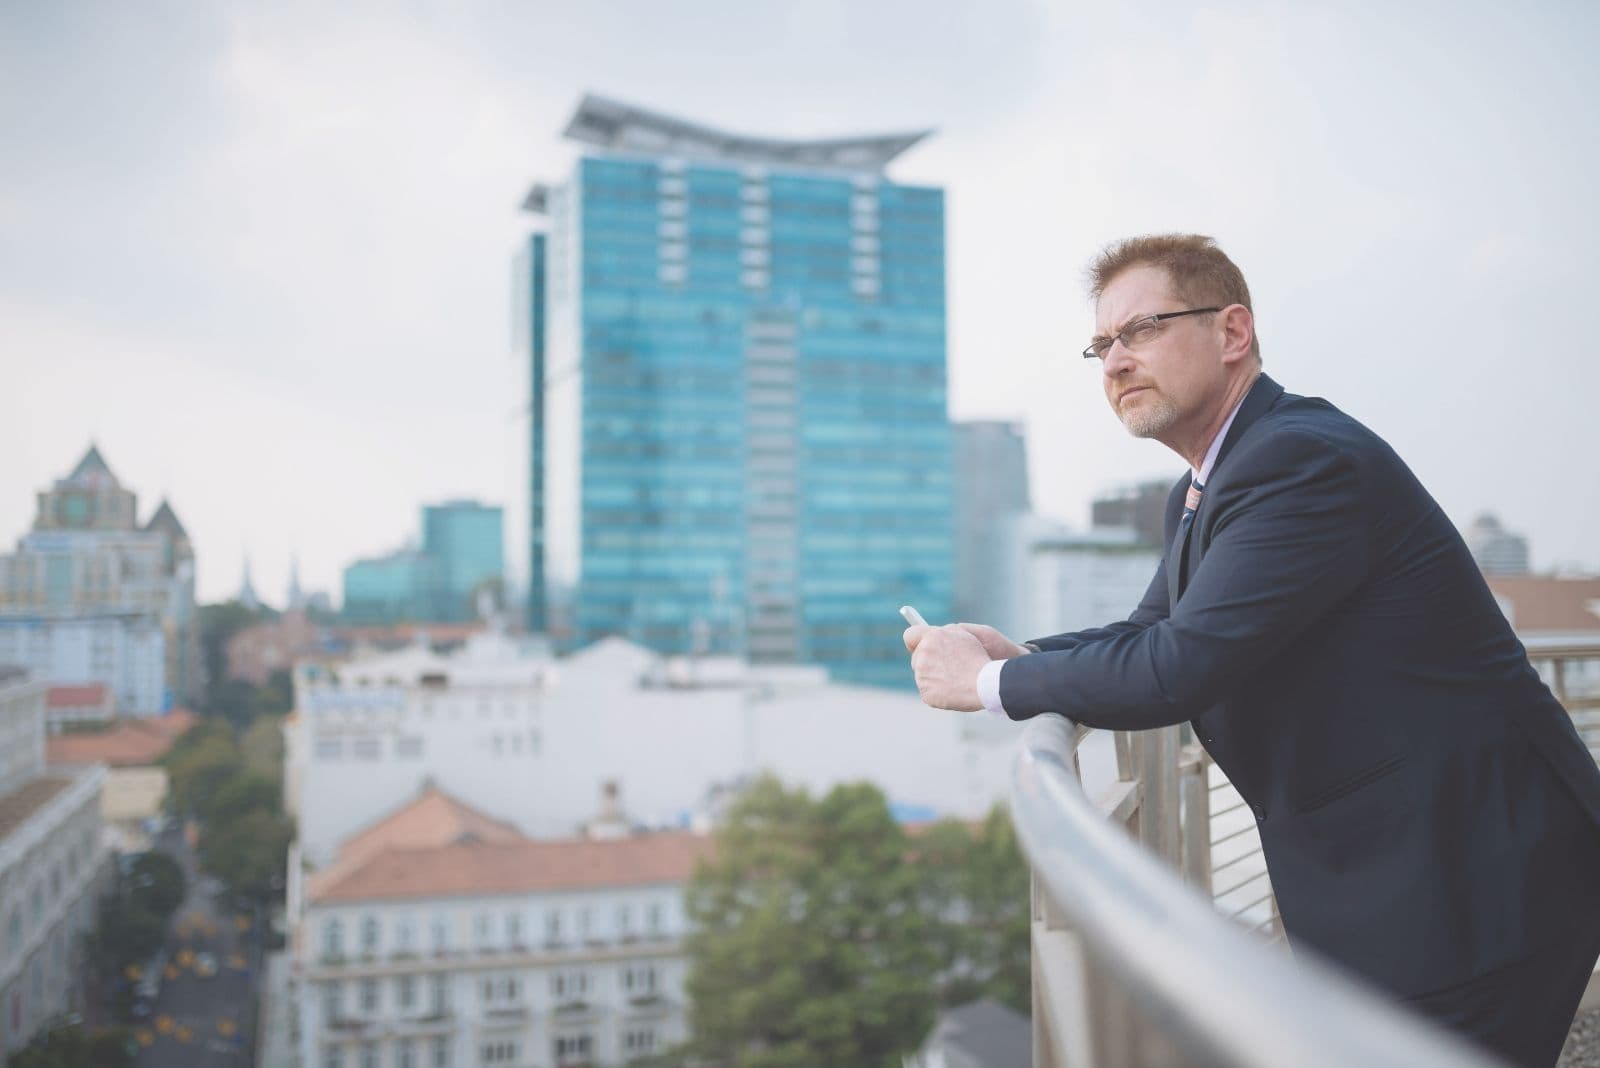 pensive business man standing on the porch of the building holding a phone